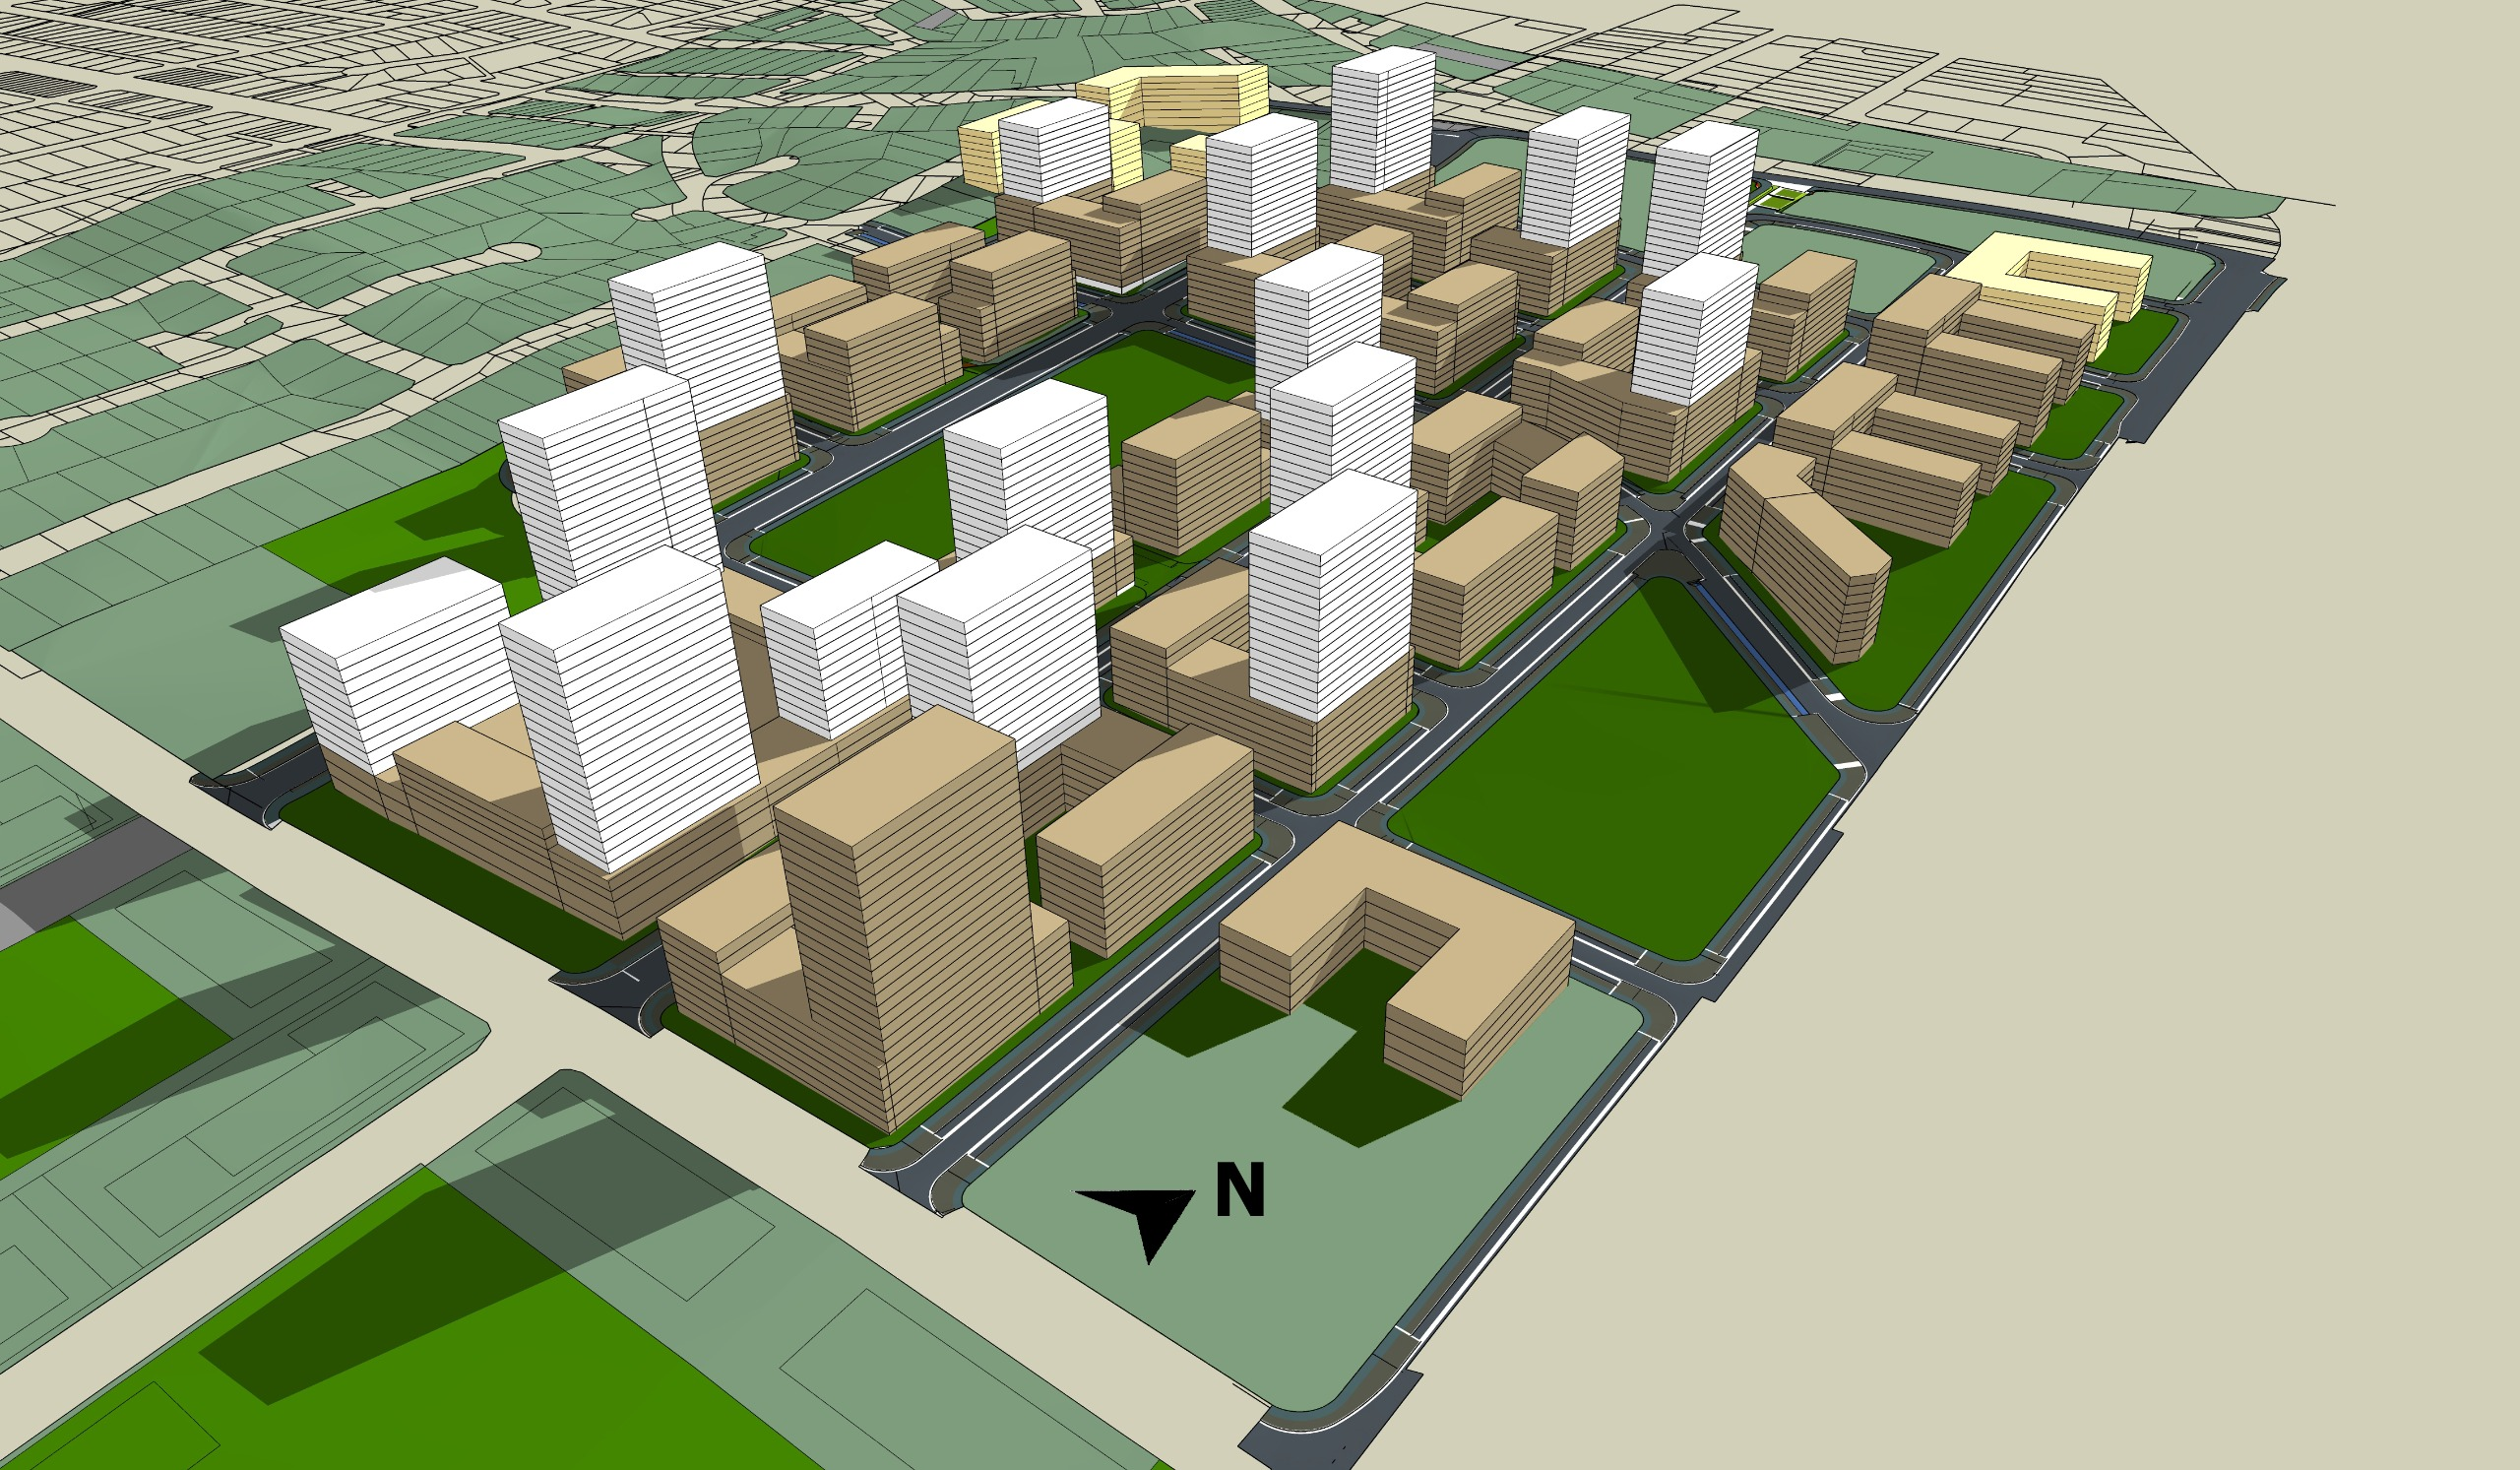 Image depicting possible shadowing of proposed buildings.